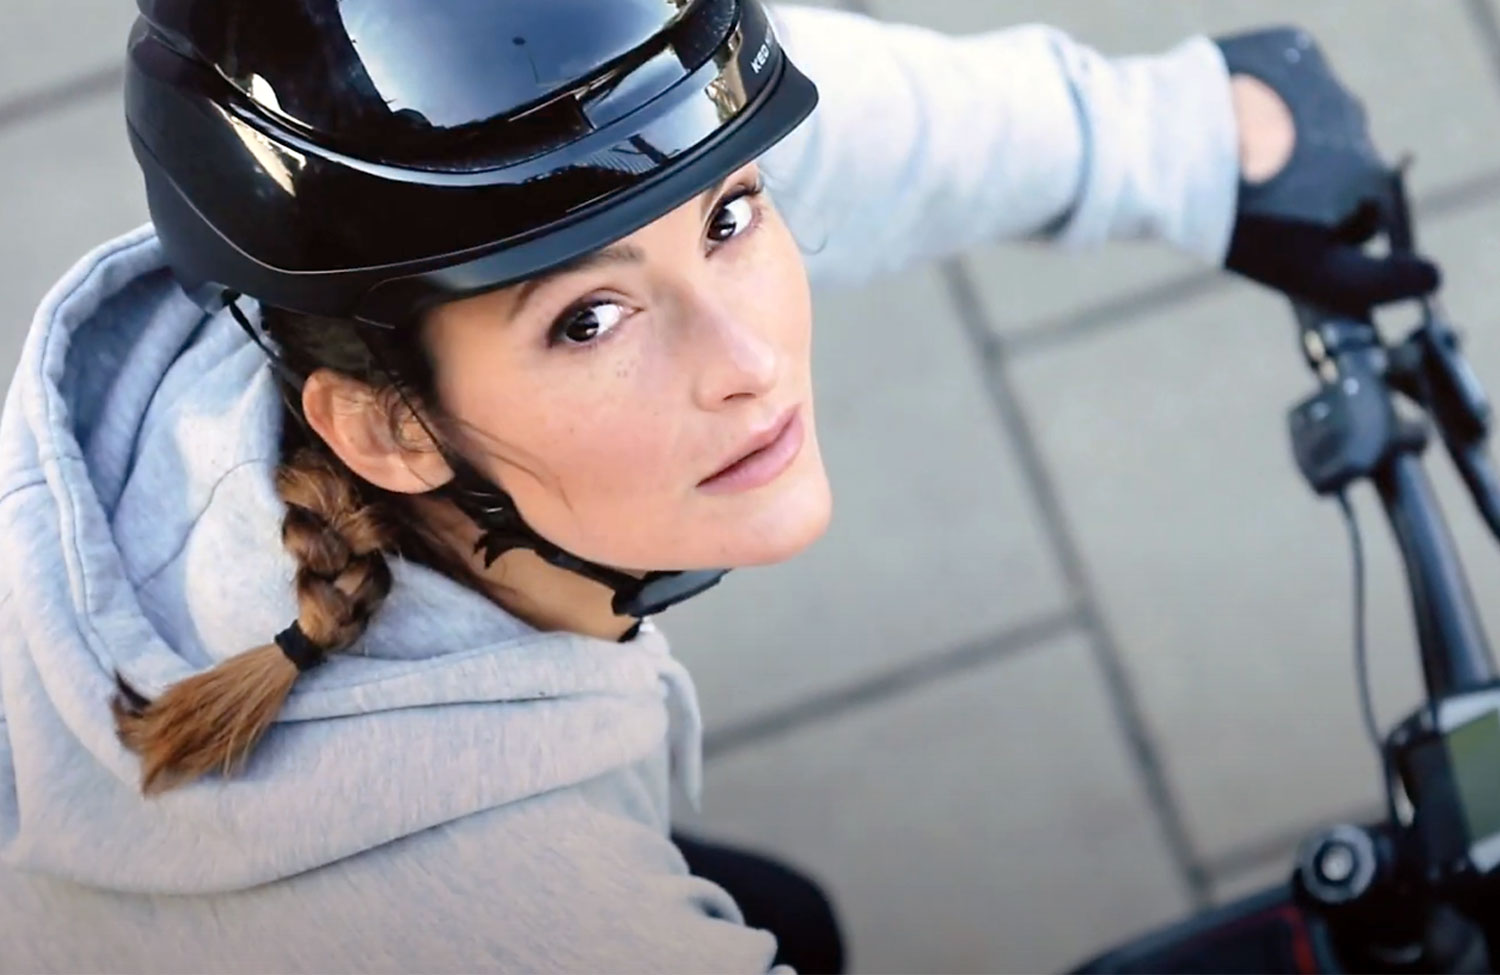 Bike helmet for urban use: KED Mitro UE-1 with MIPS, BOA and LED light